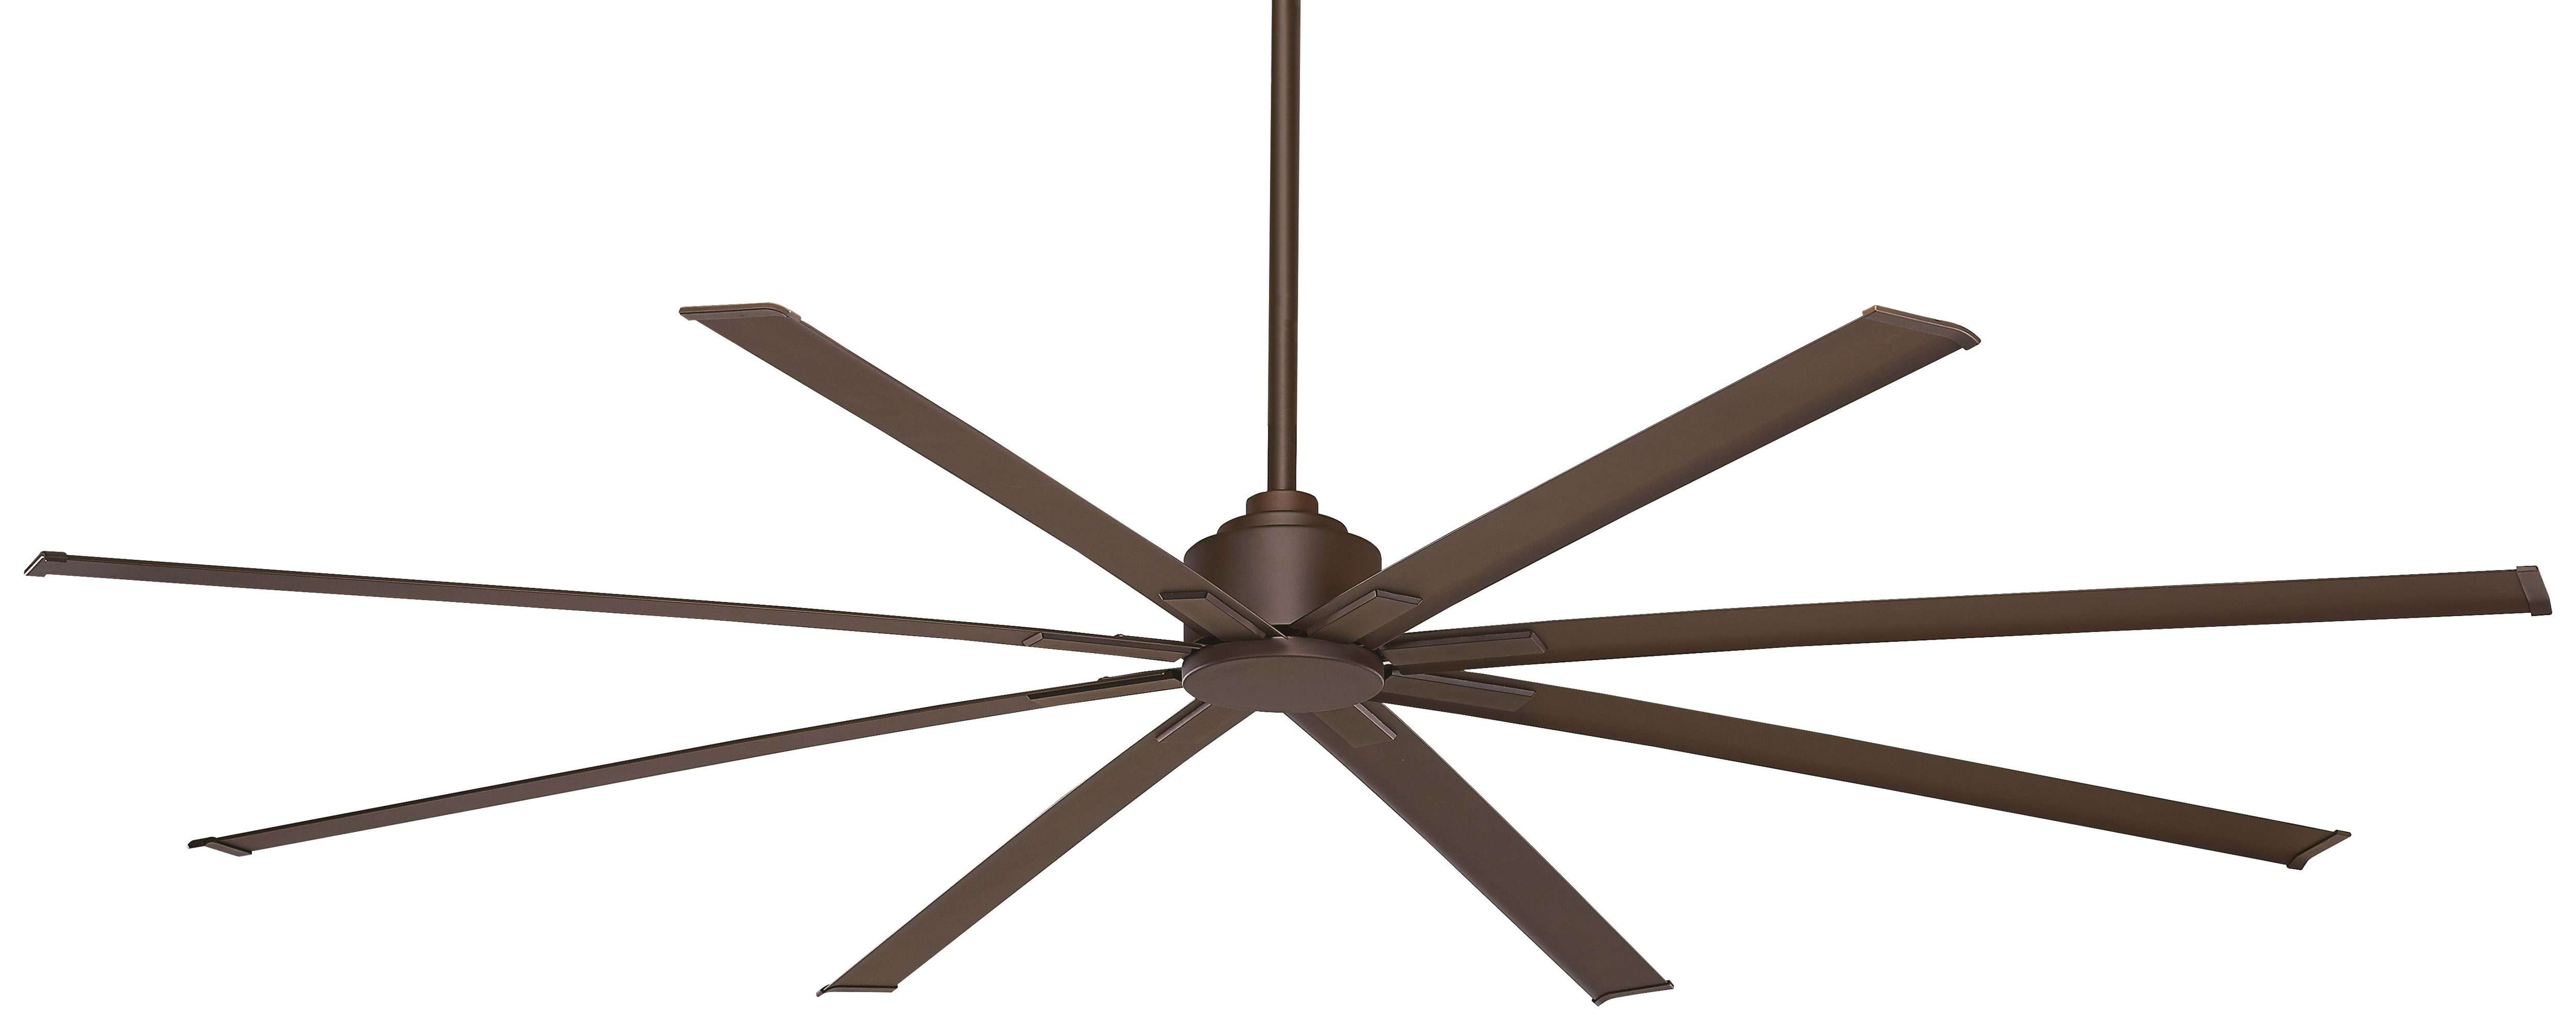 aged five bellacor three brushed inch winton fan ceiling fans bronze lights light with blades htm